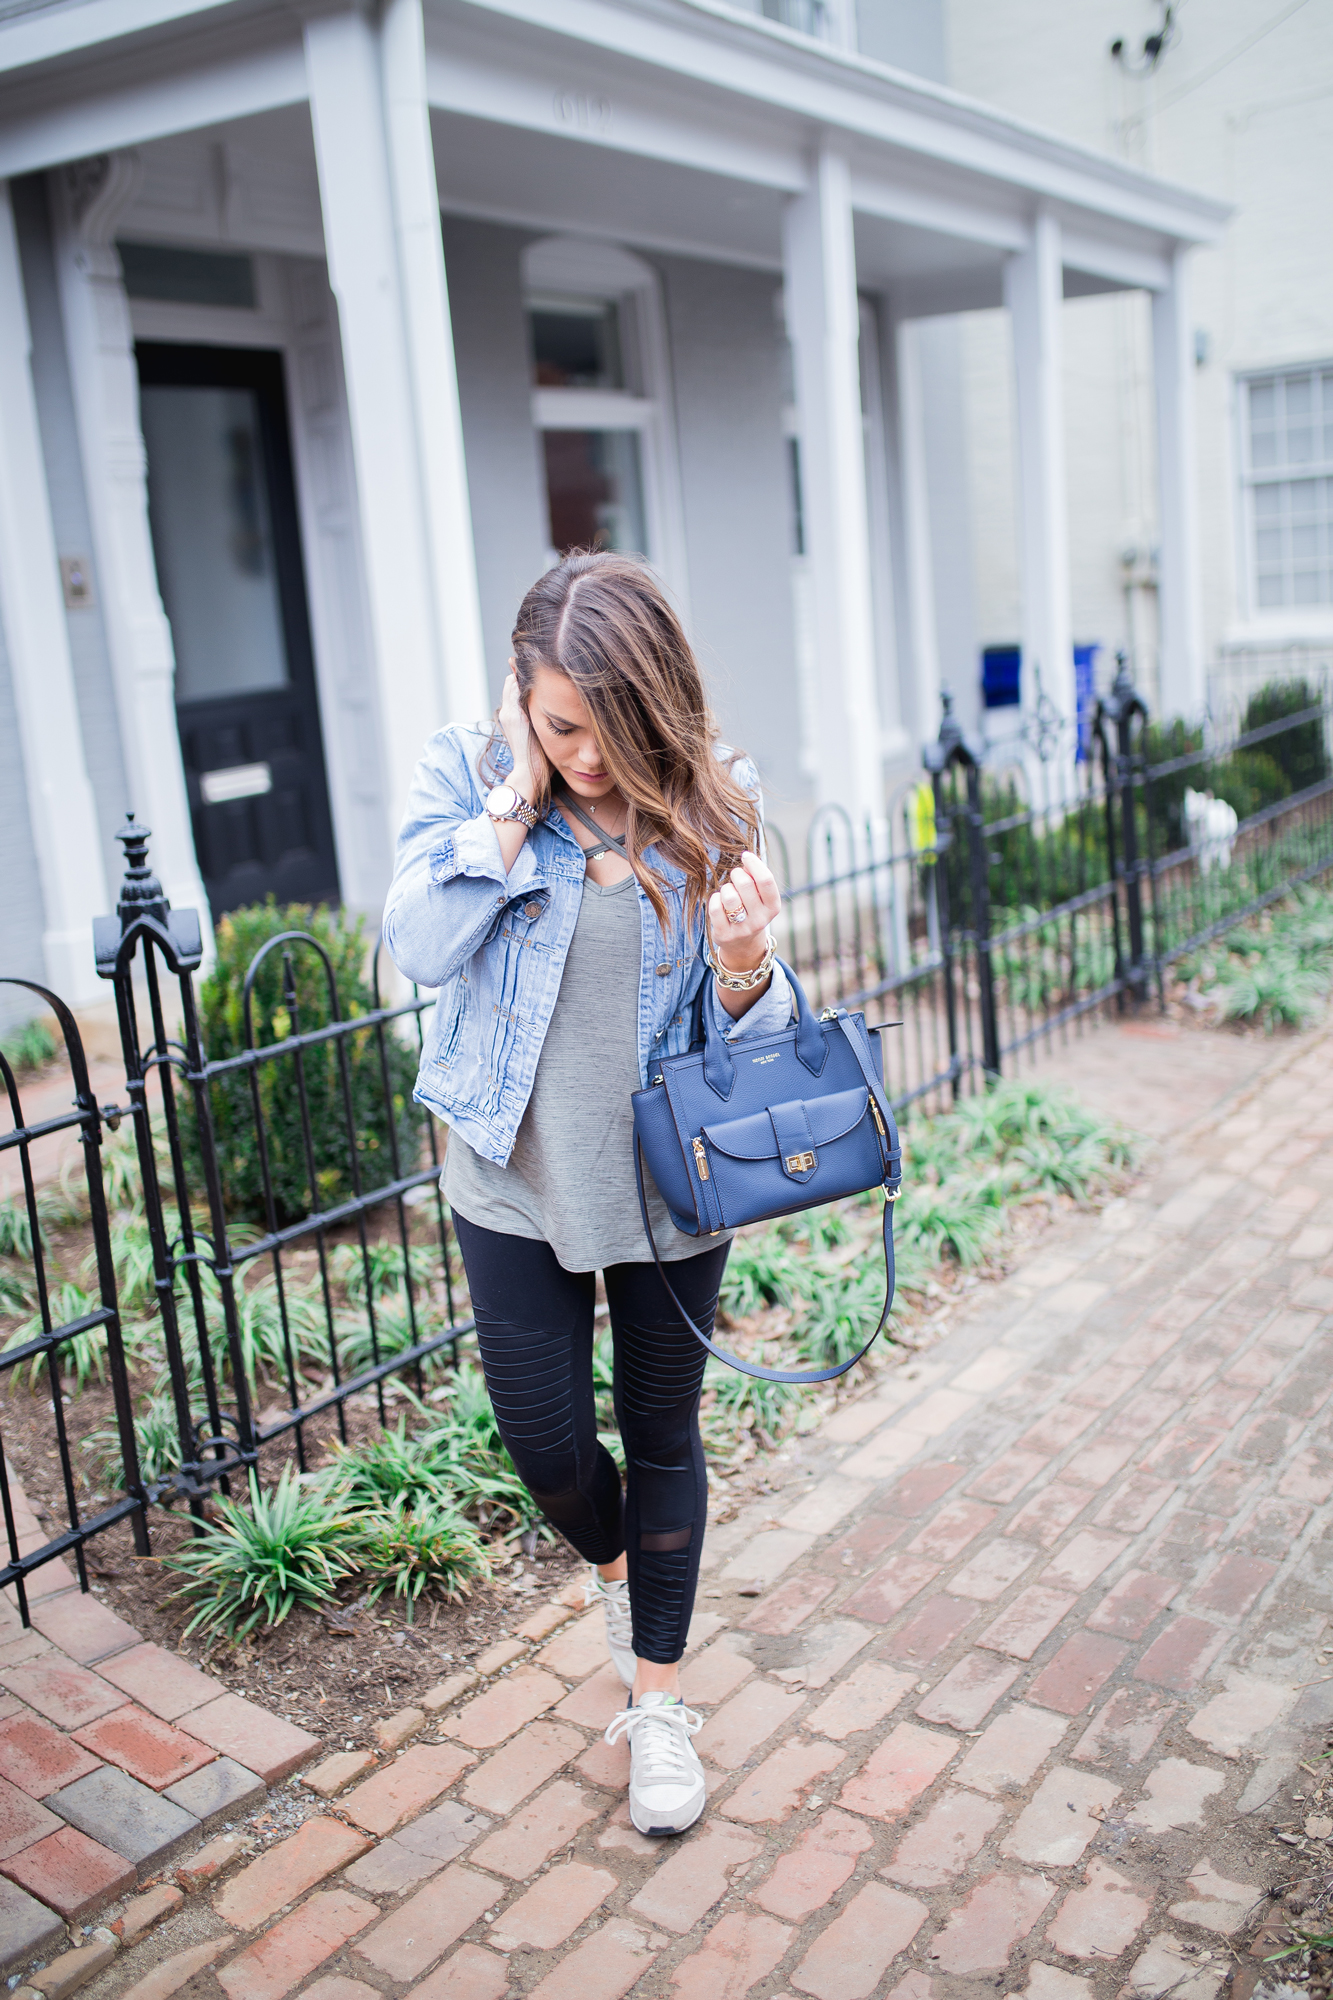 Athleisure Outfit Inspiration ft. Alo Moto Leggings, Denim Jacket, Nike Sneakers, Henri Bendel